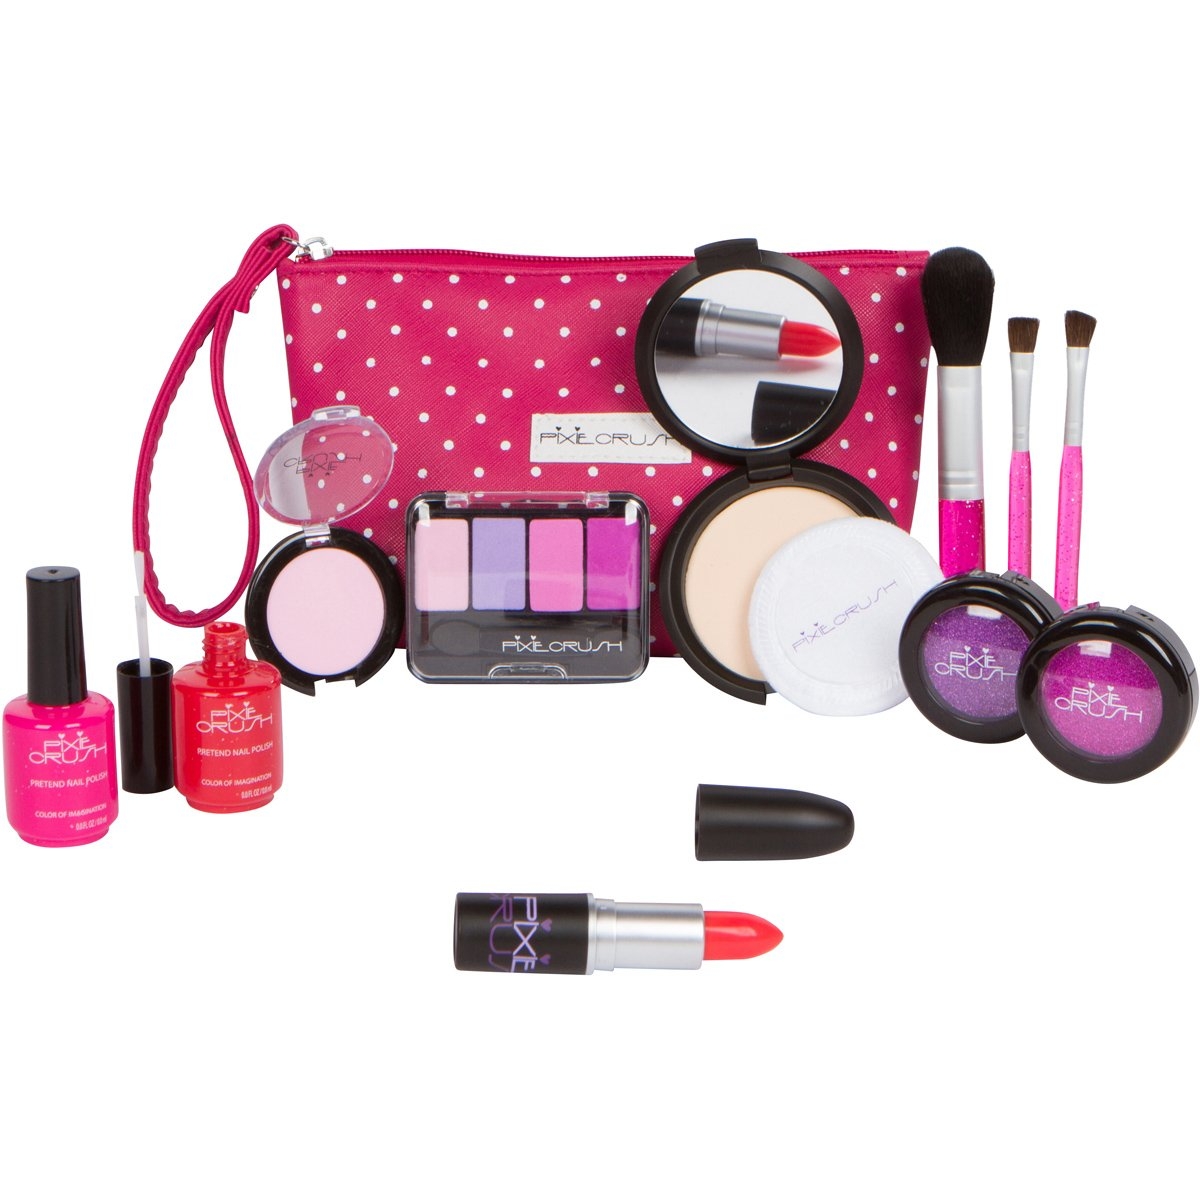 PixieCrush Pretend Play Cosmetic and Makeup Set. 13 Piece Designer Kit with Pink Polka Dot Handbag